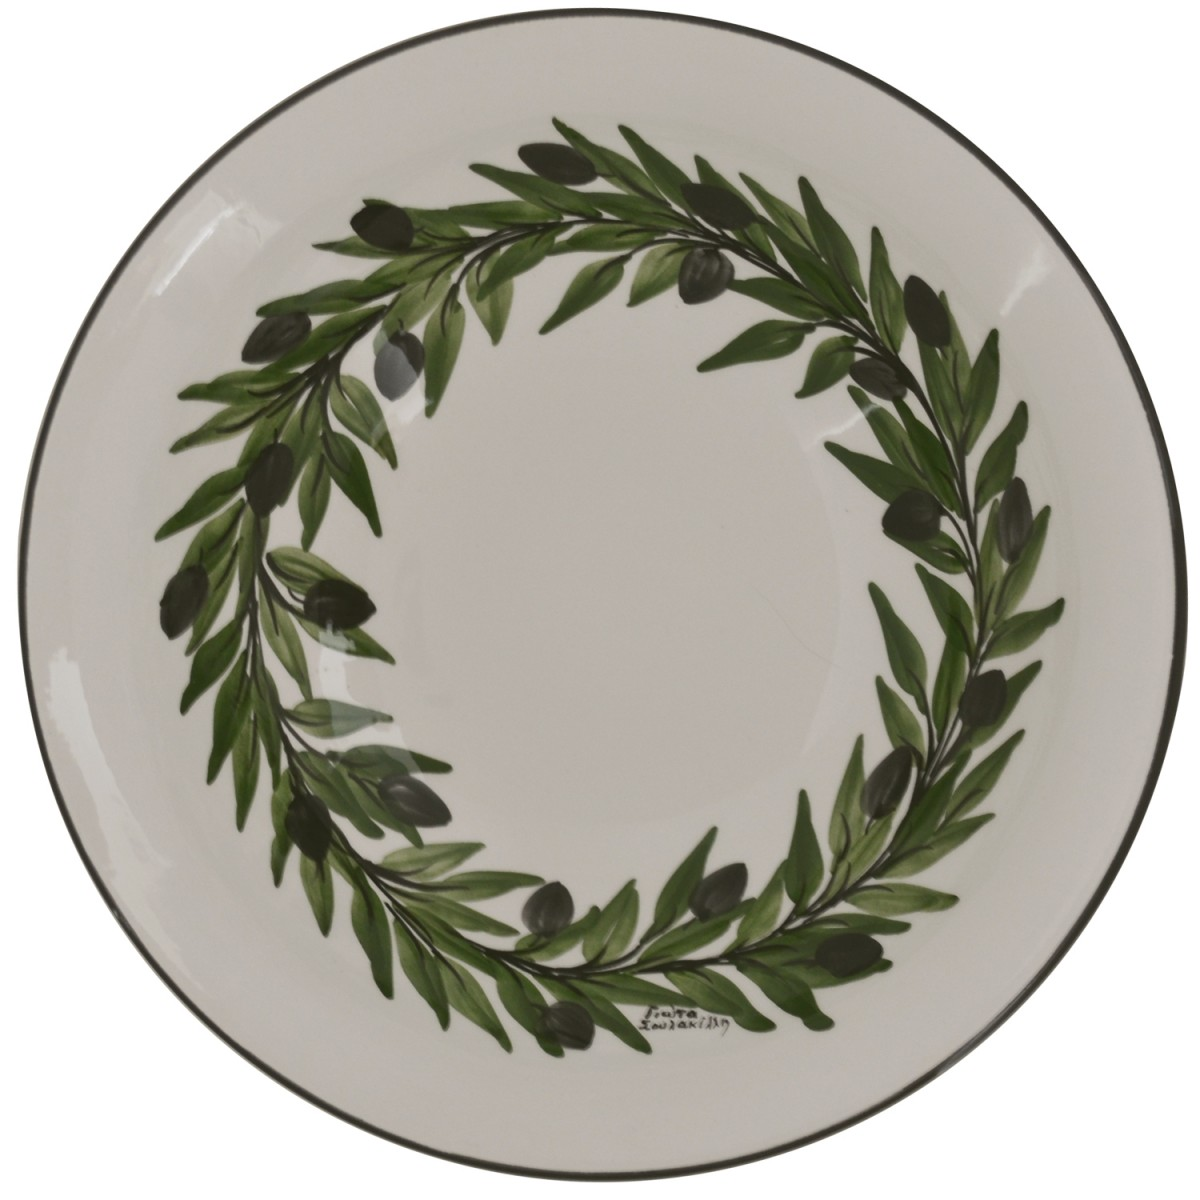 Large decorative bowls for tables-Olive wreath-1